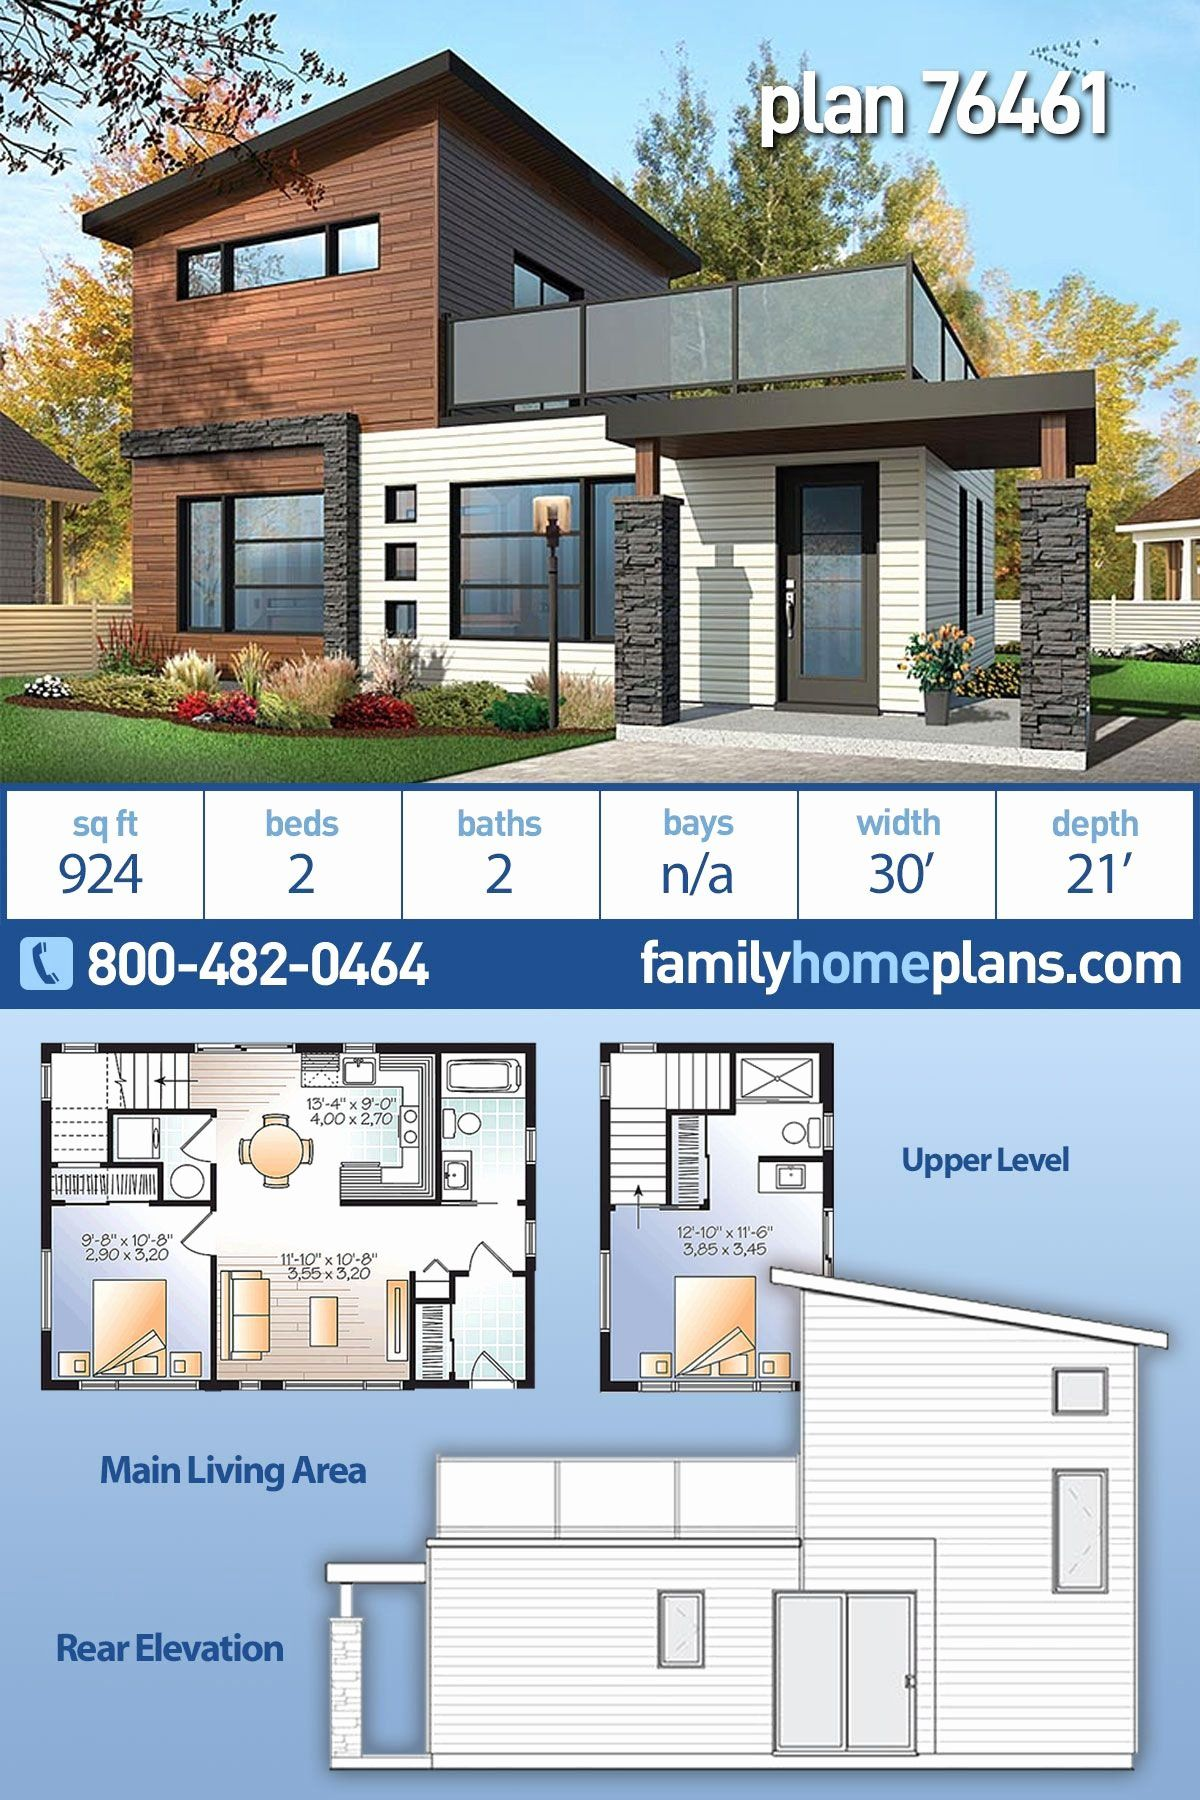 Contemporary Style House Plans Inspirational Modern Style House Plan With 2 Bed 2 Bath In 2020 Beautiful House Plans Modern Style House Plans Modern House Floor Plans